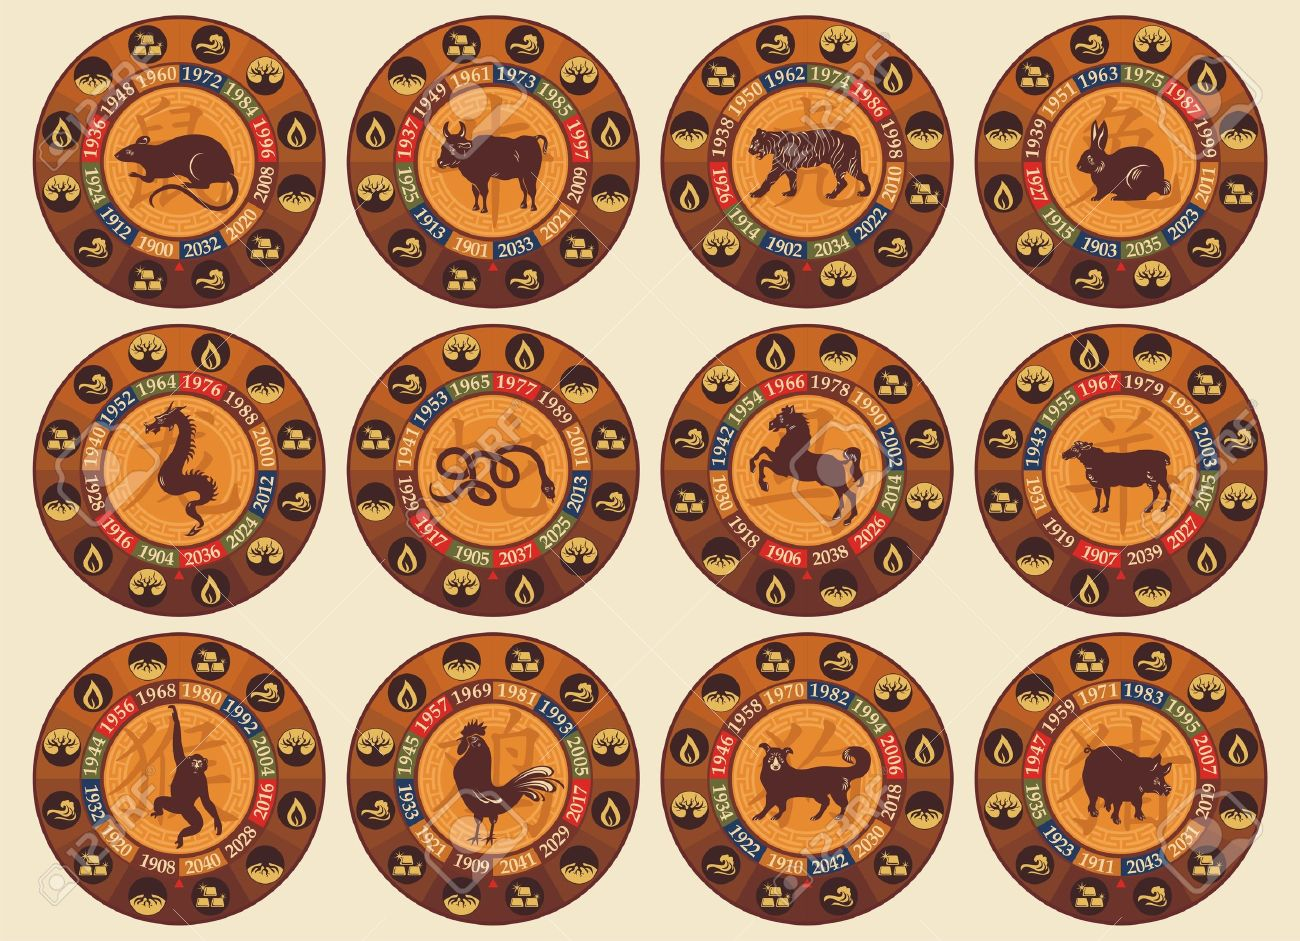 Chinese zodiac set with years and the five elements symbols chinese zodiac set with years and the five elements symbols stock vector 14526621 biocorpaavc Gallery